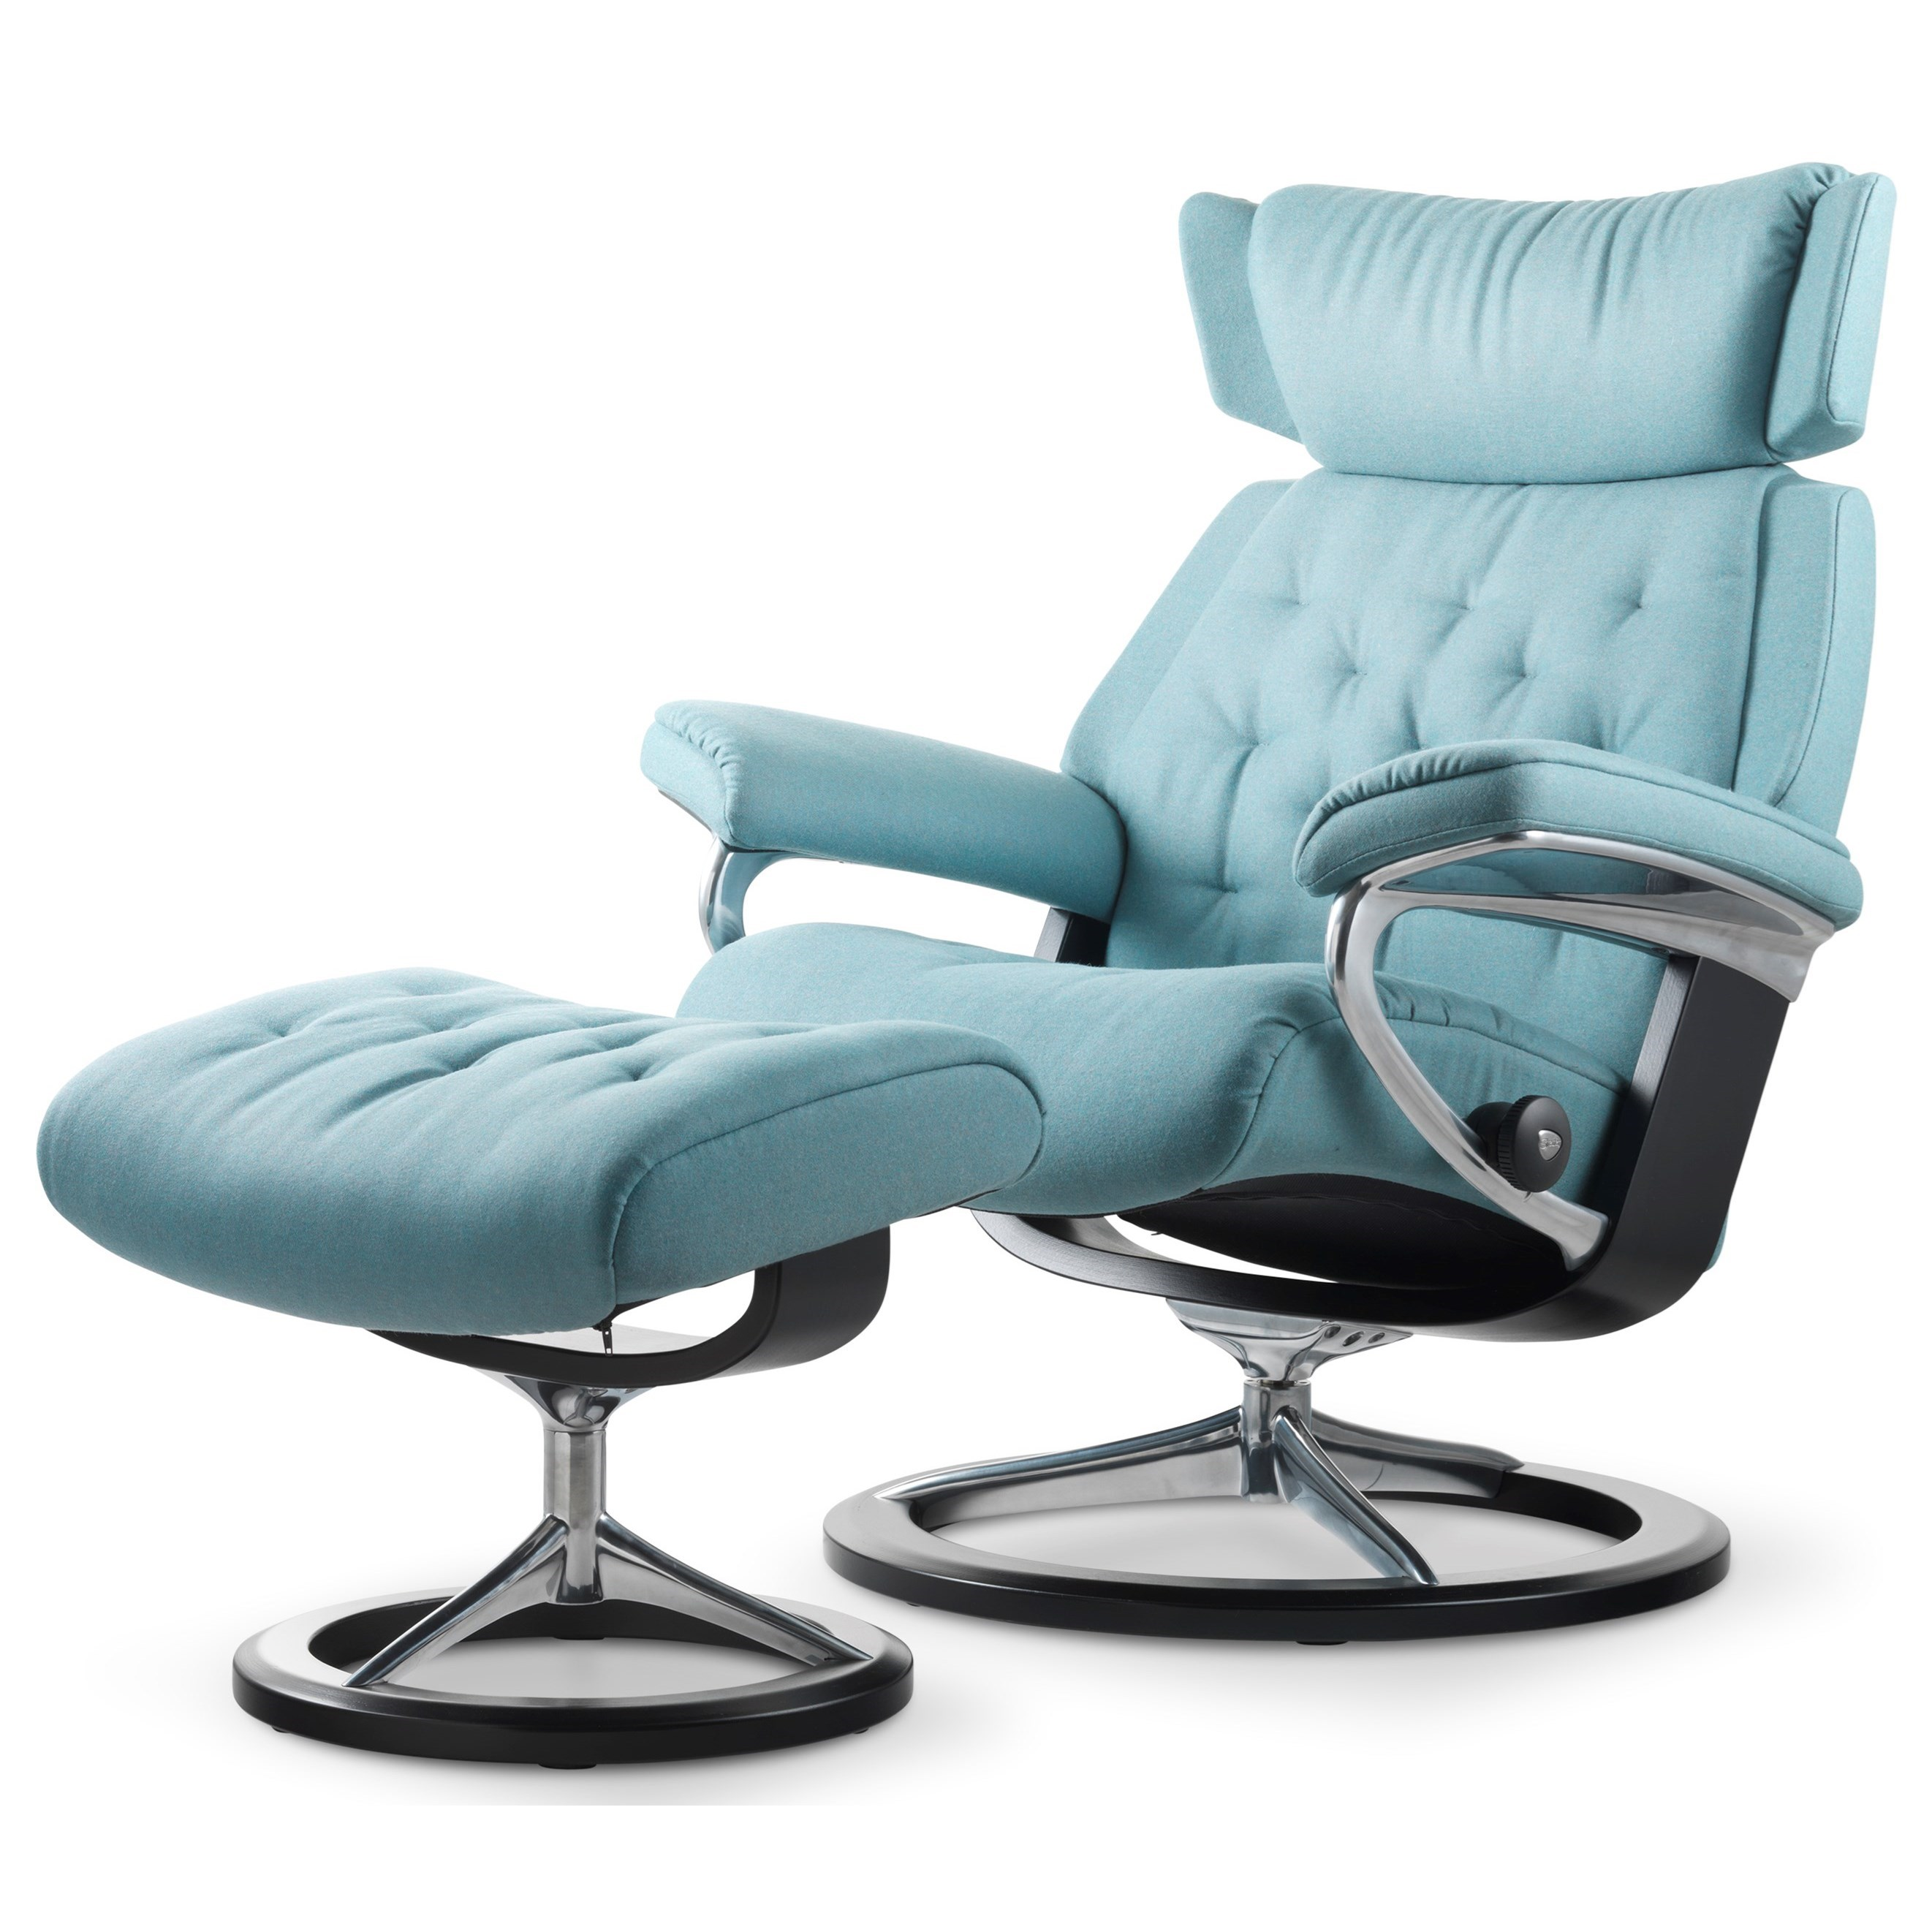 Skyline Medium Chair & Ottoman with Signature Base by Stressless at Virginia Furniture Market